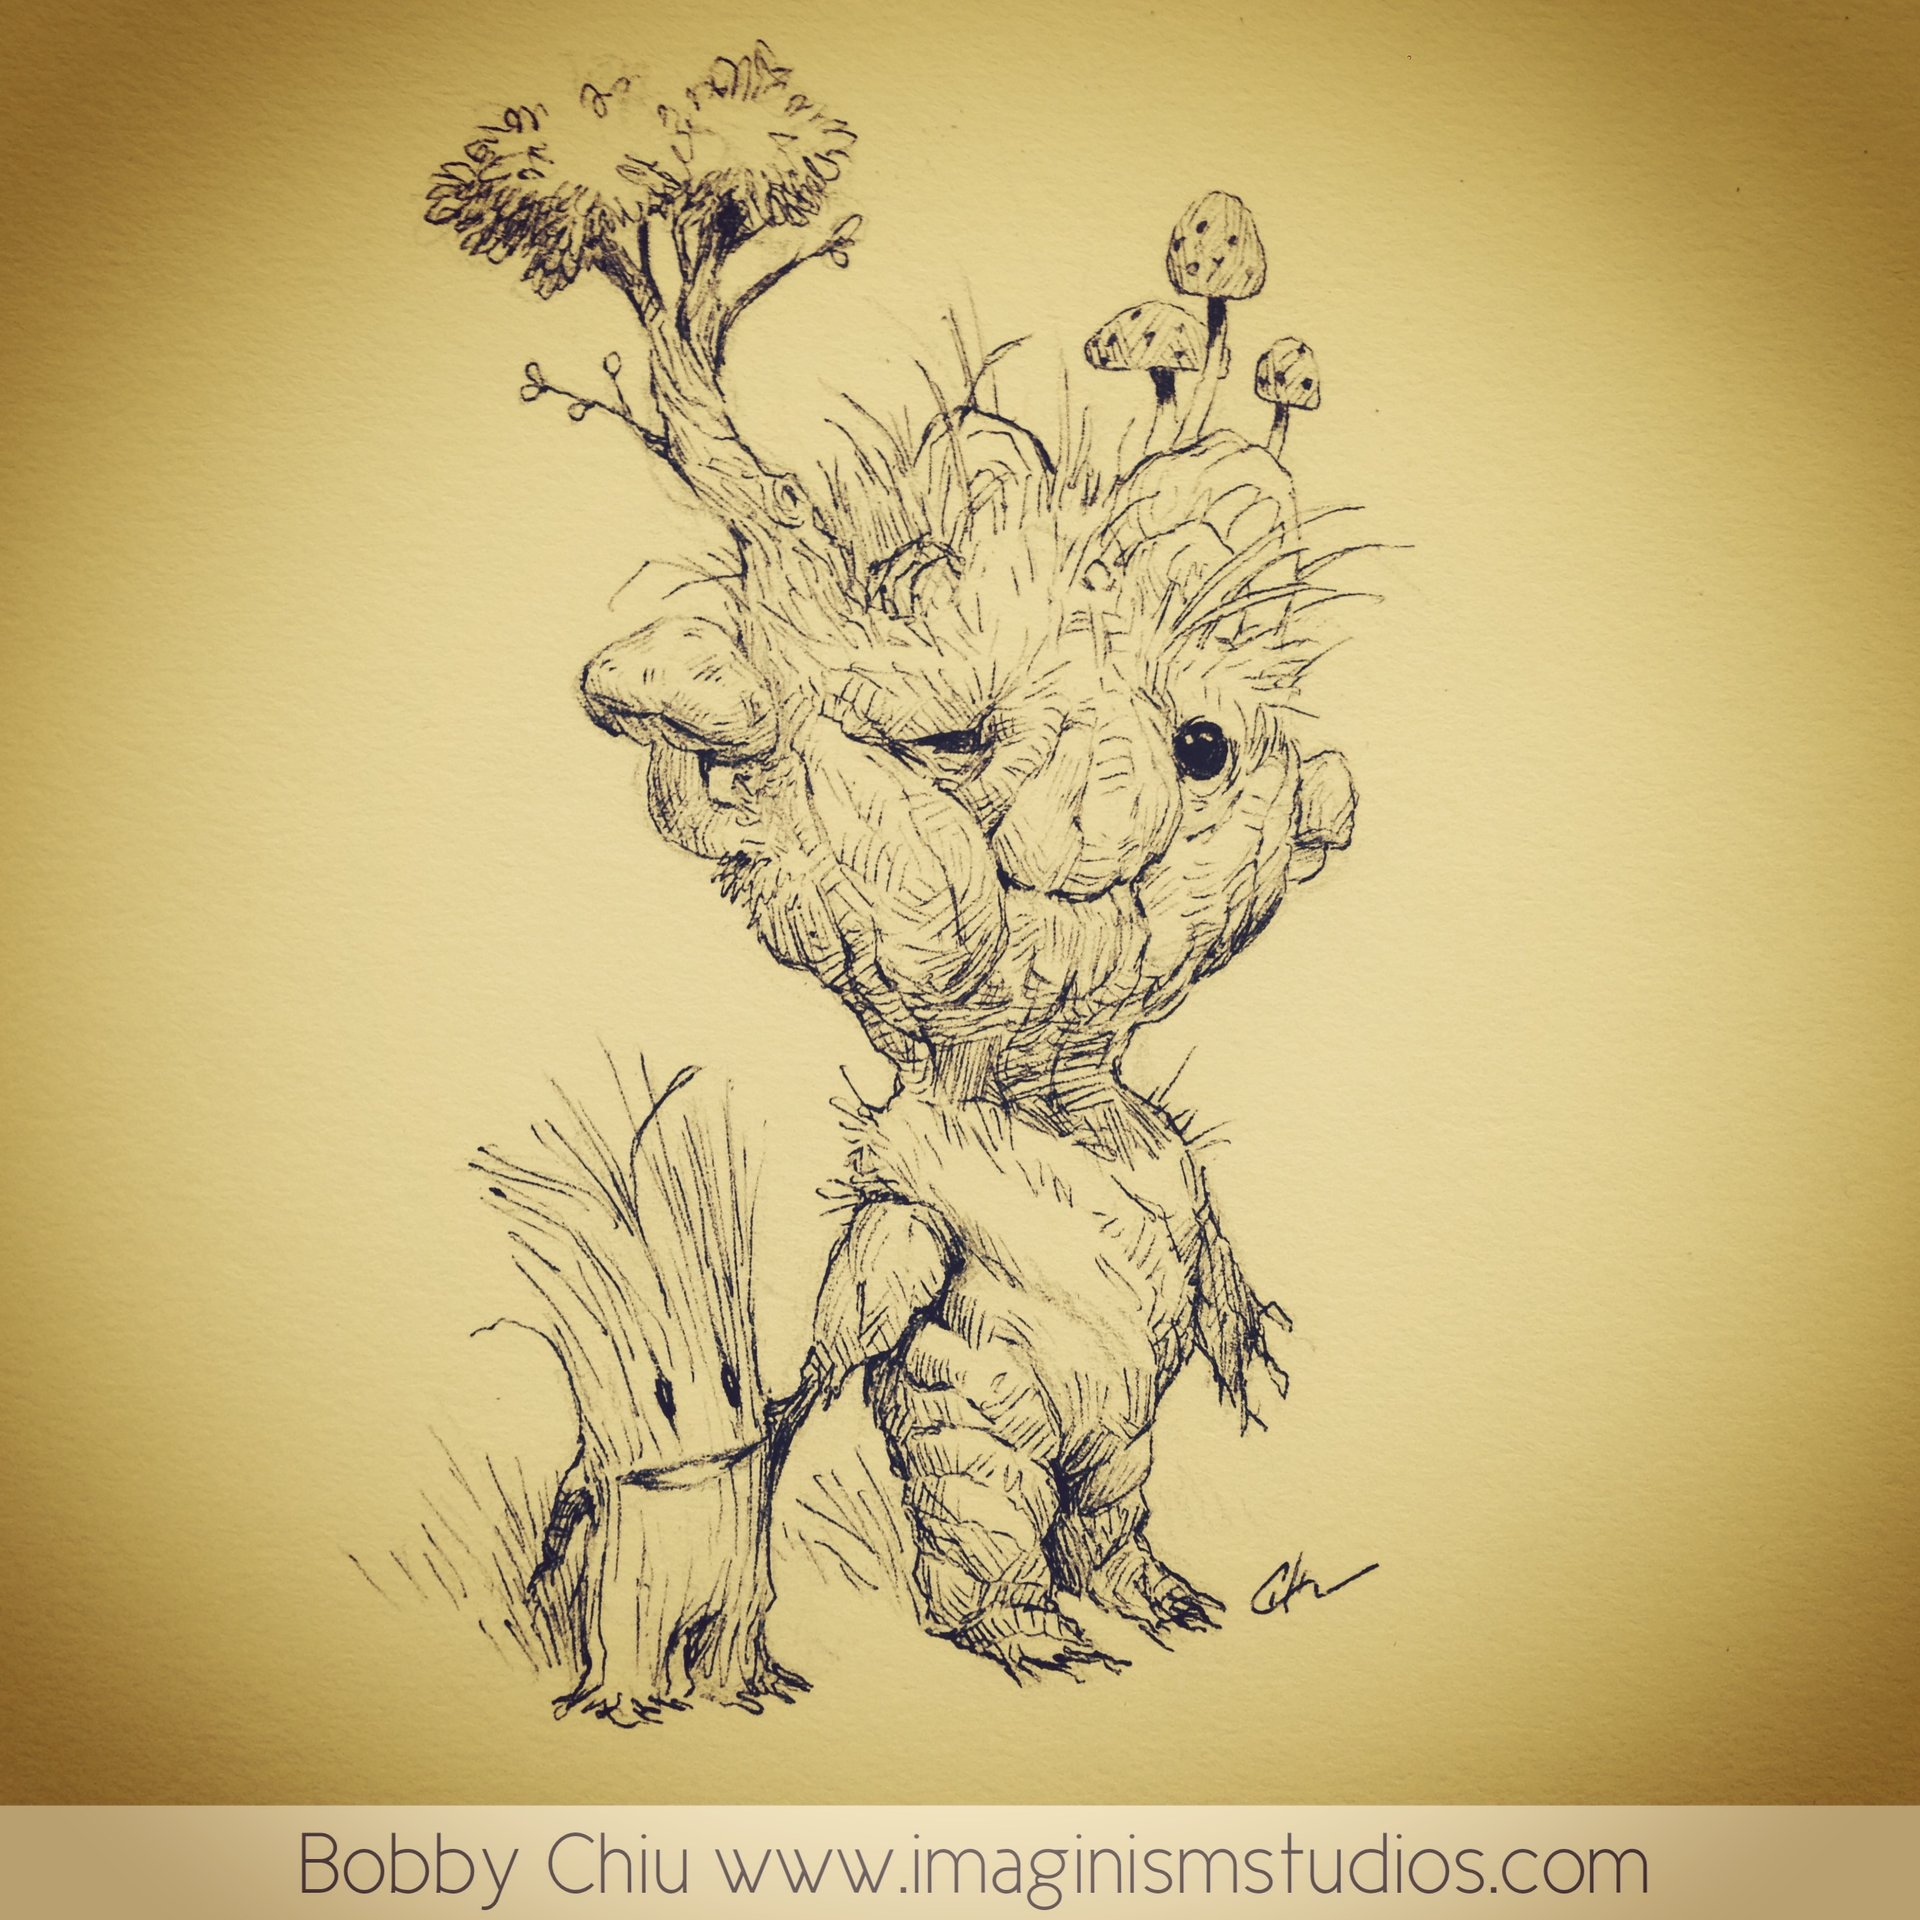 Bobby chiu forest friends by imaginism d72ym91